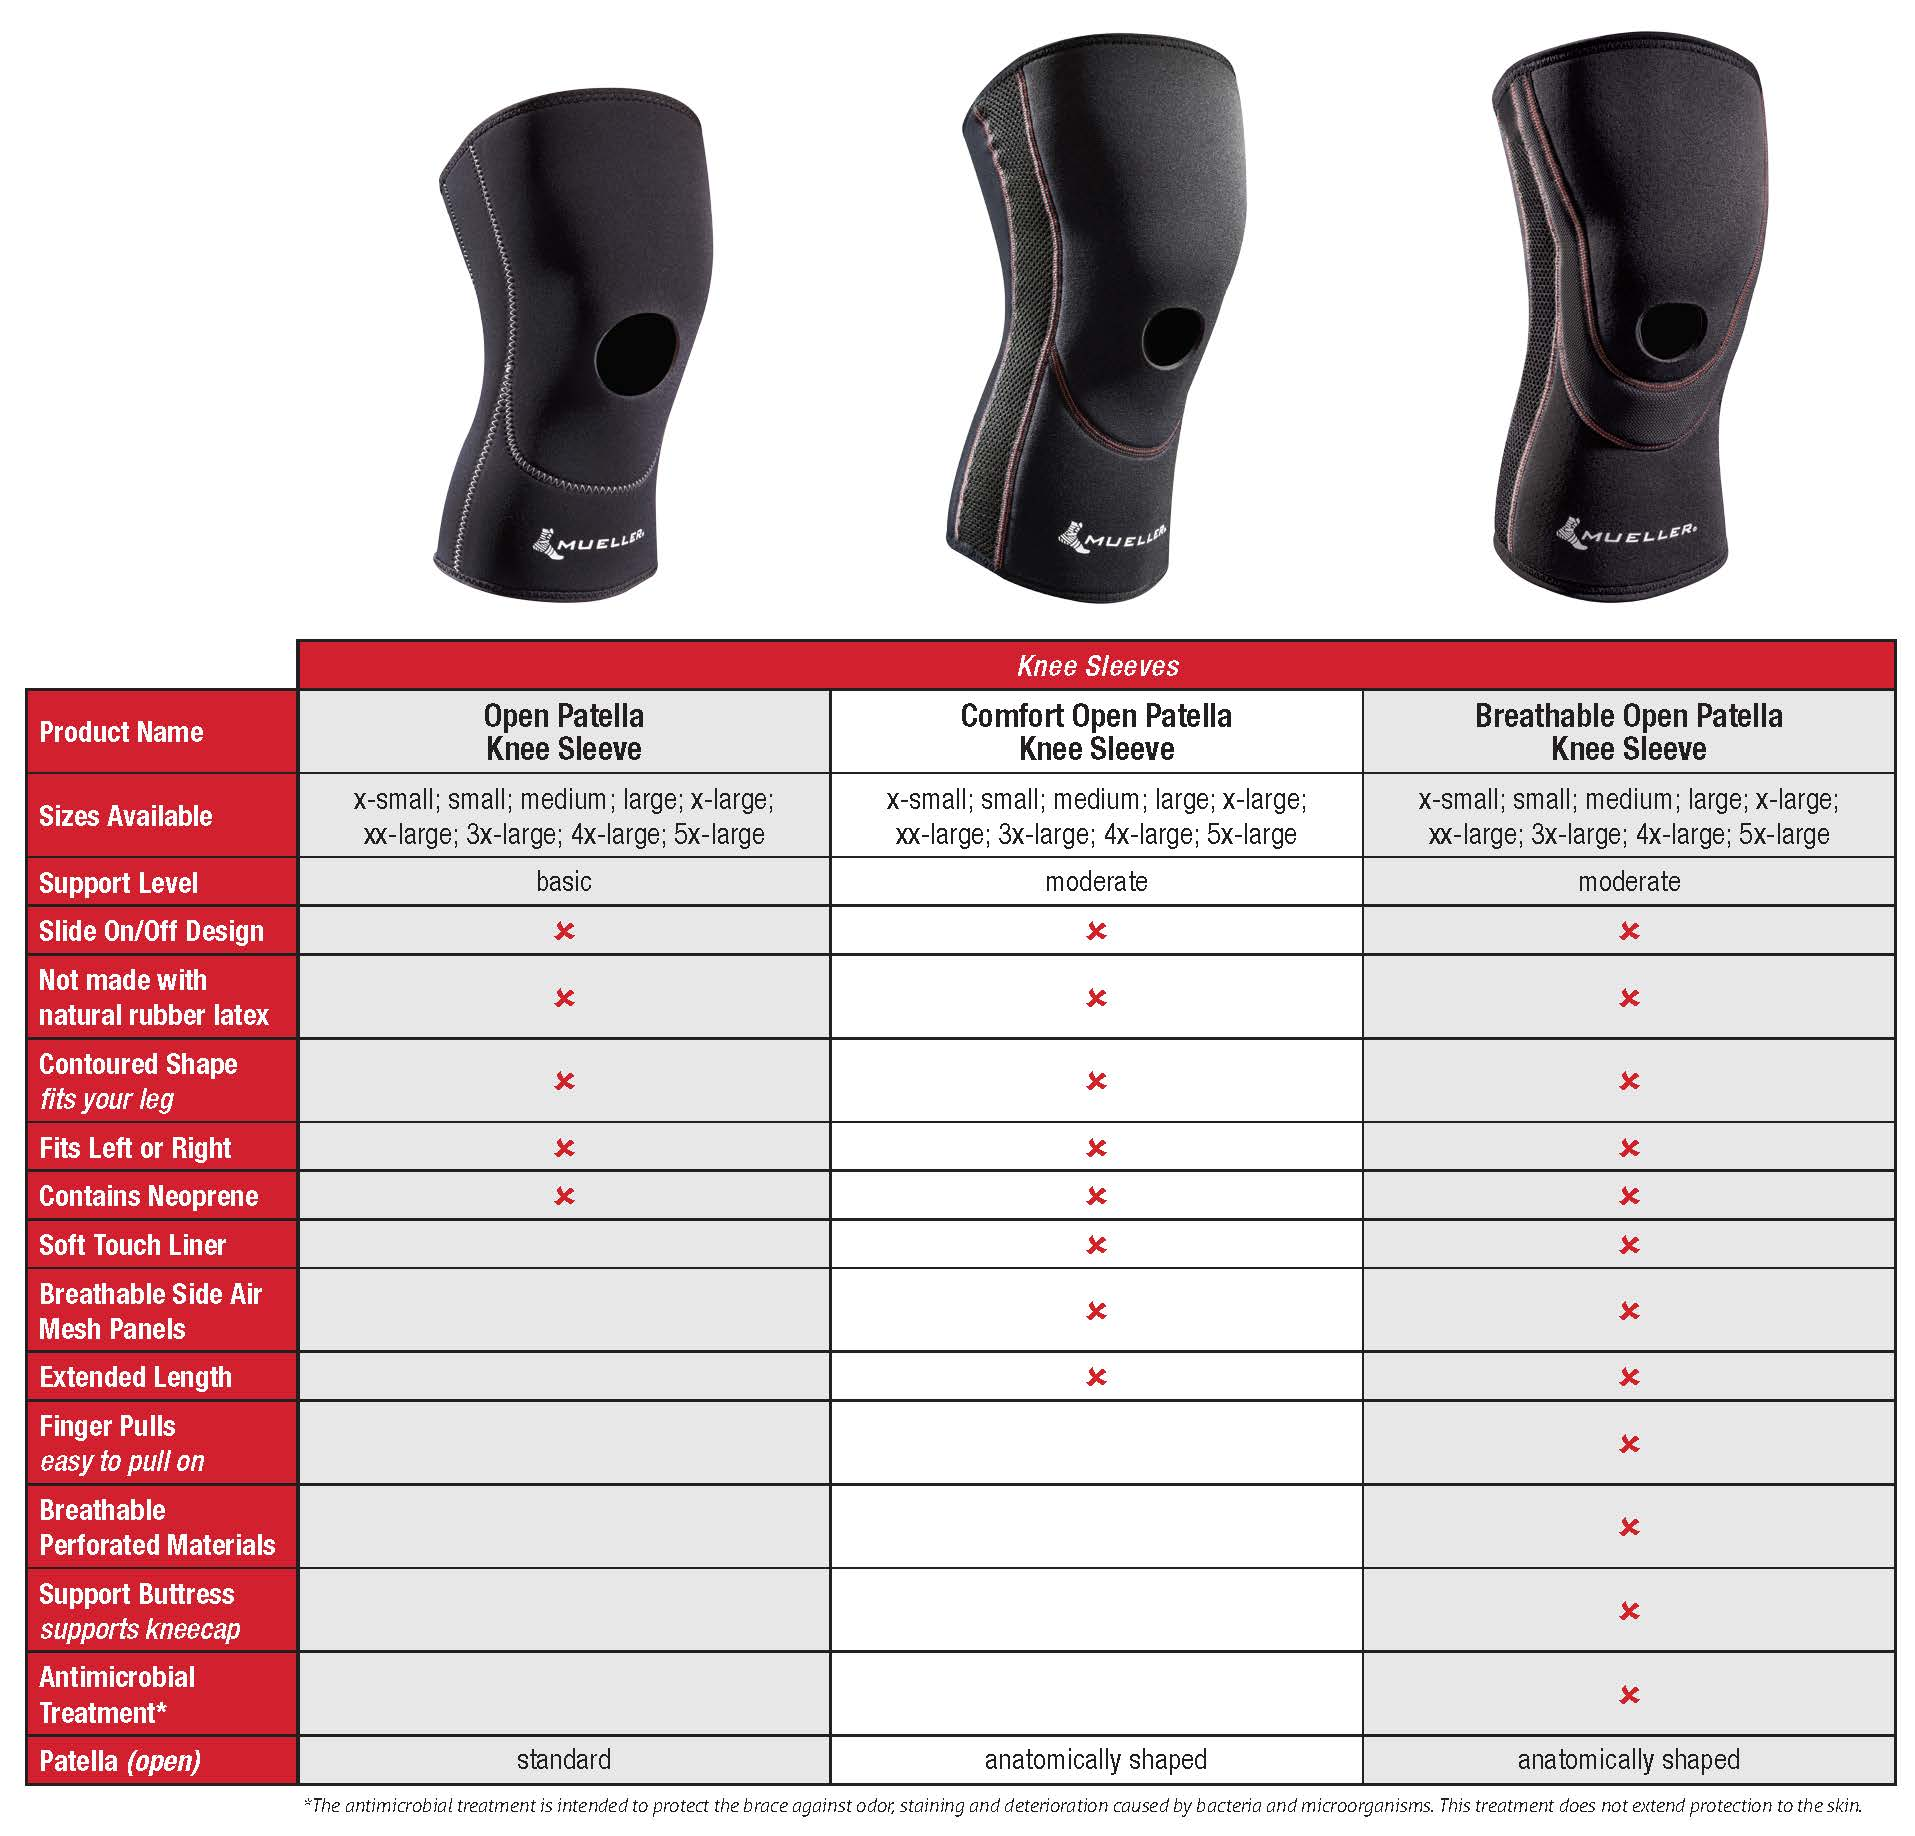 Open Patella Knee Sleeve Comparison Chart